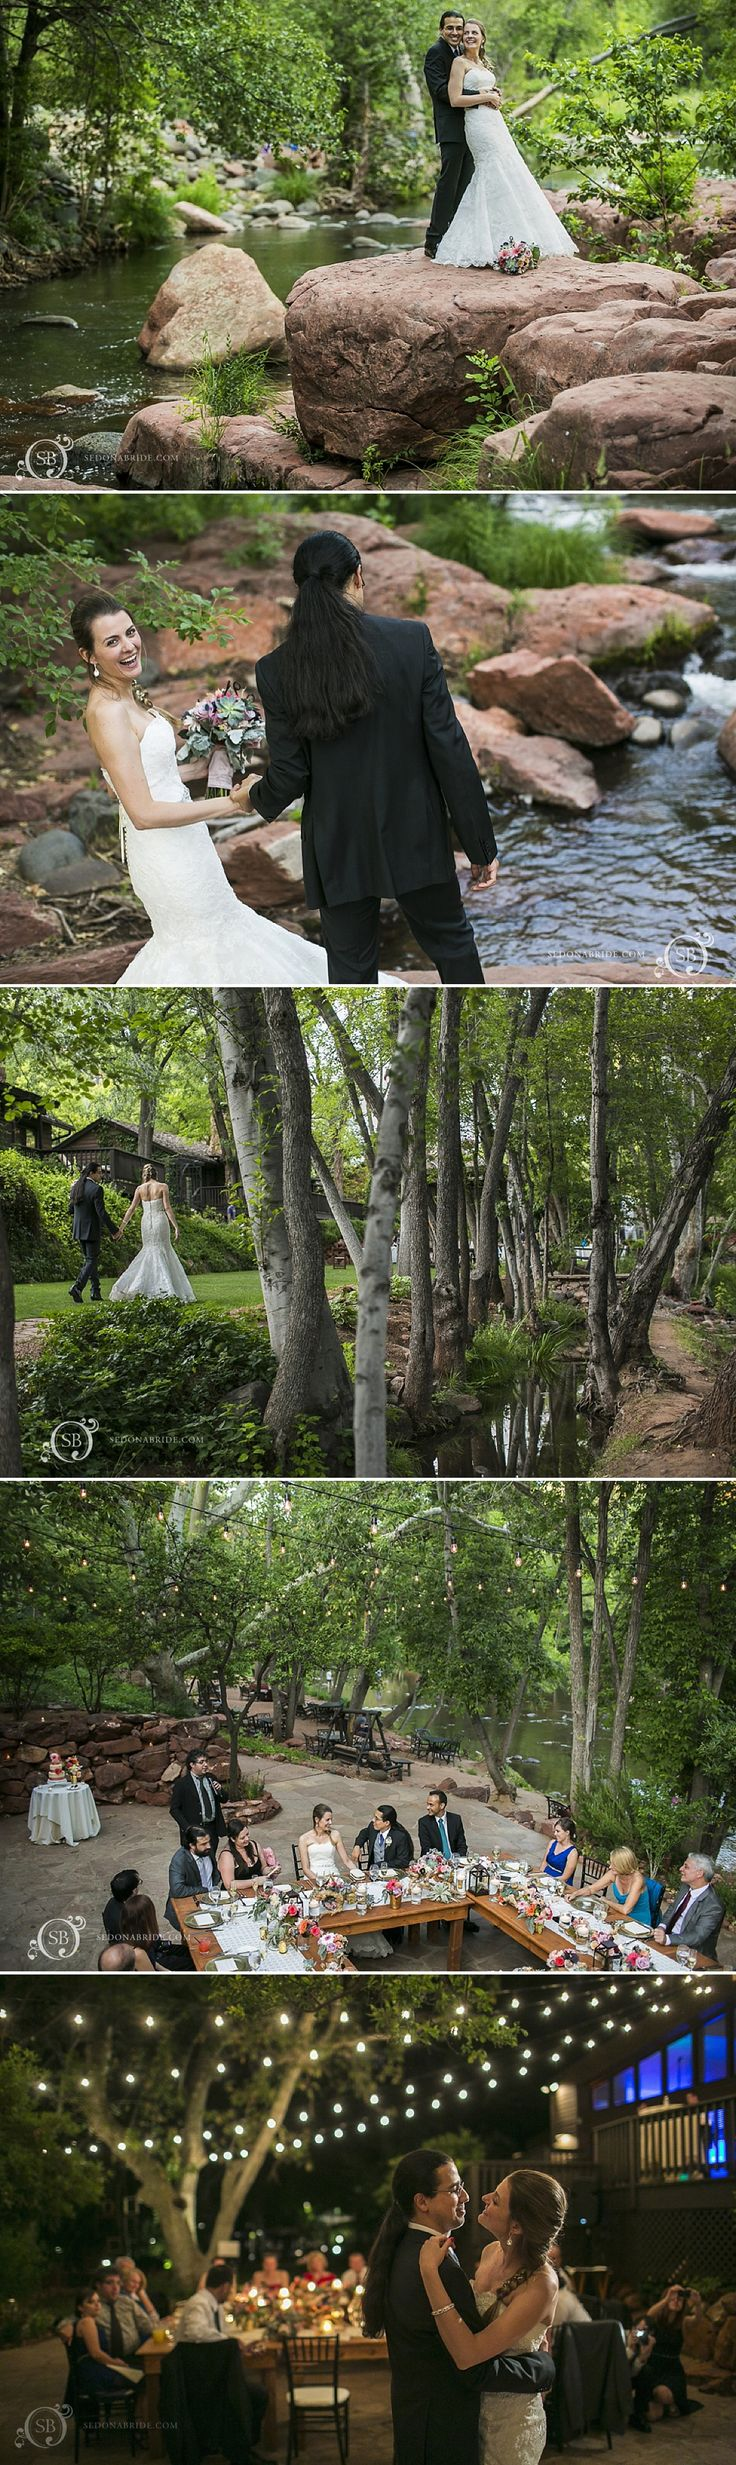 Sedona wedding reception at L'Auberge de Sedona... photography by Katrina at Sedona Bride Photographers www.sedonabride.com ... Floral by Mountain High Flowers ... outdoor Sedona wedding venue @laubergesedona